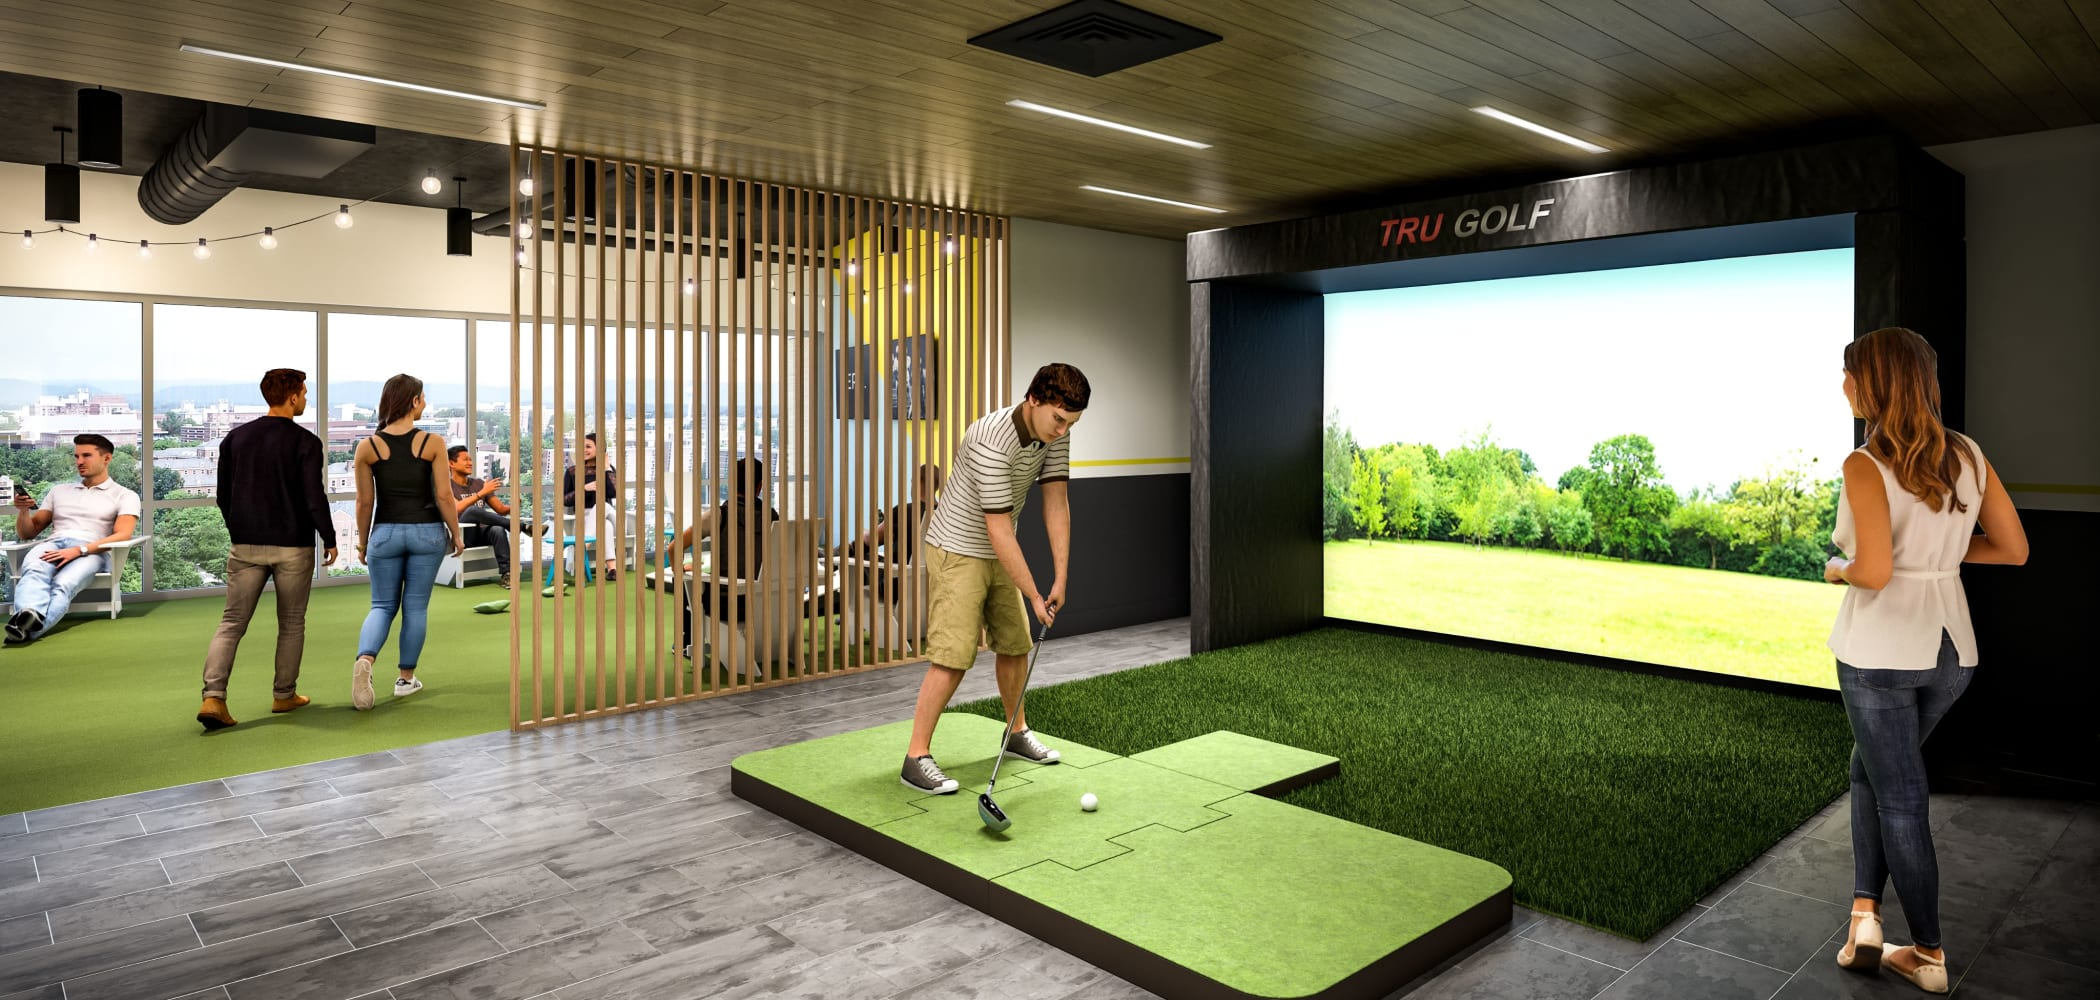 Golf simulation room at HERE State College in State College, Pennsylvania